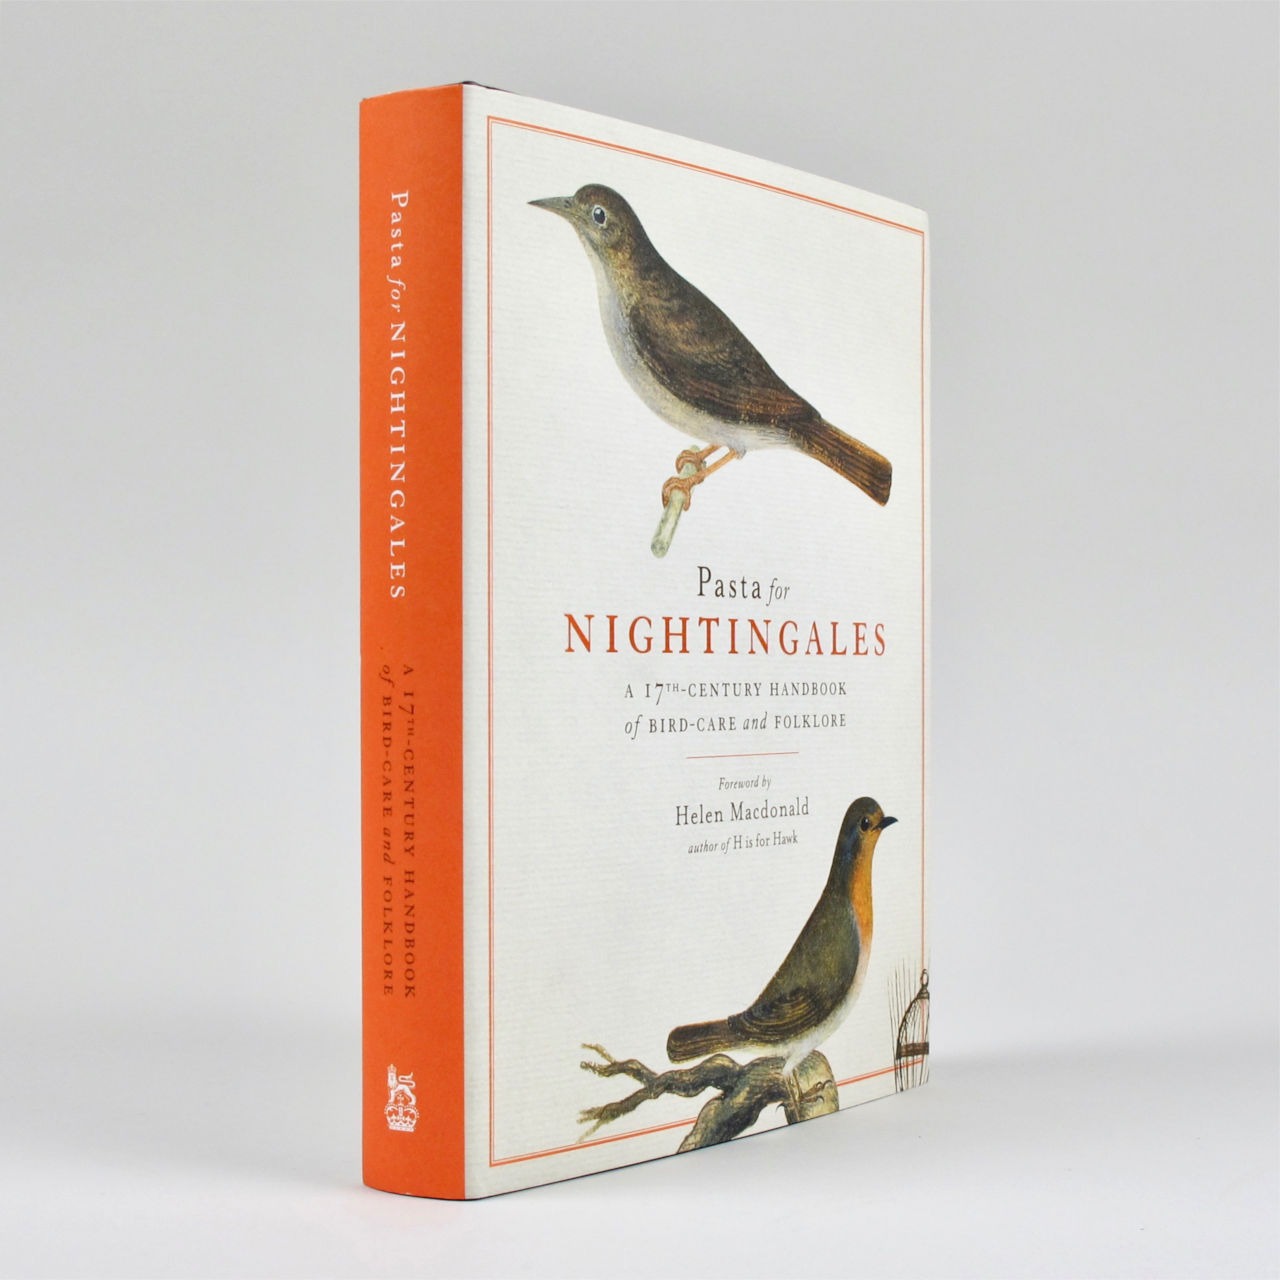 Pasta for Nightingales